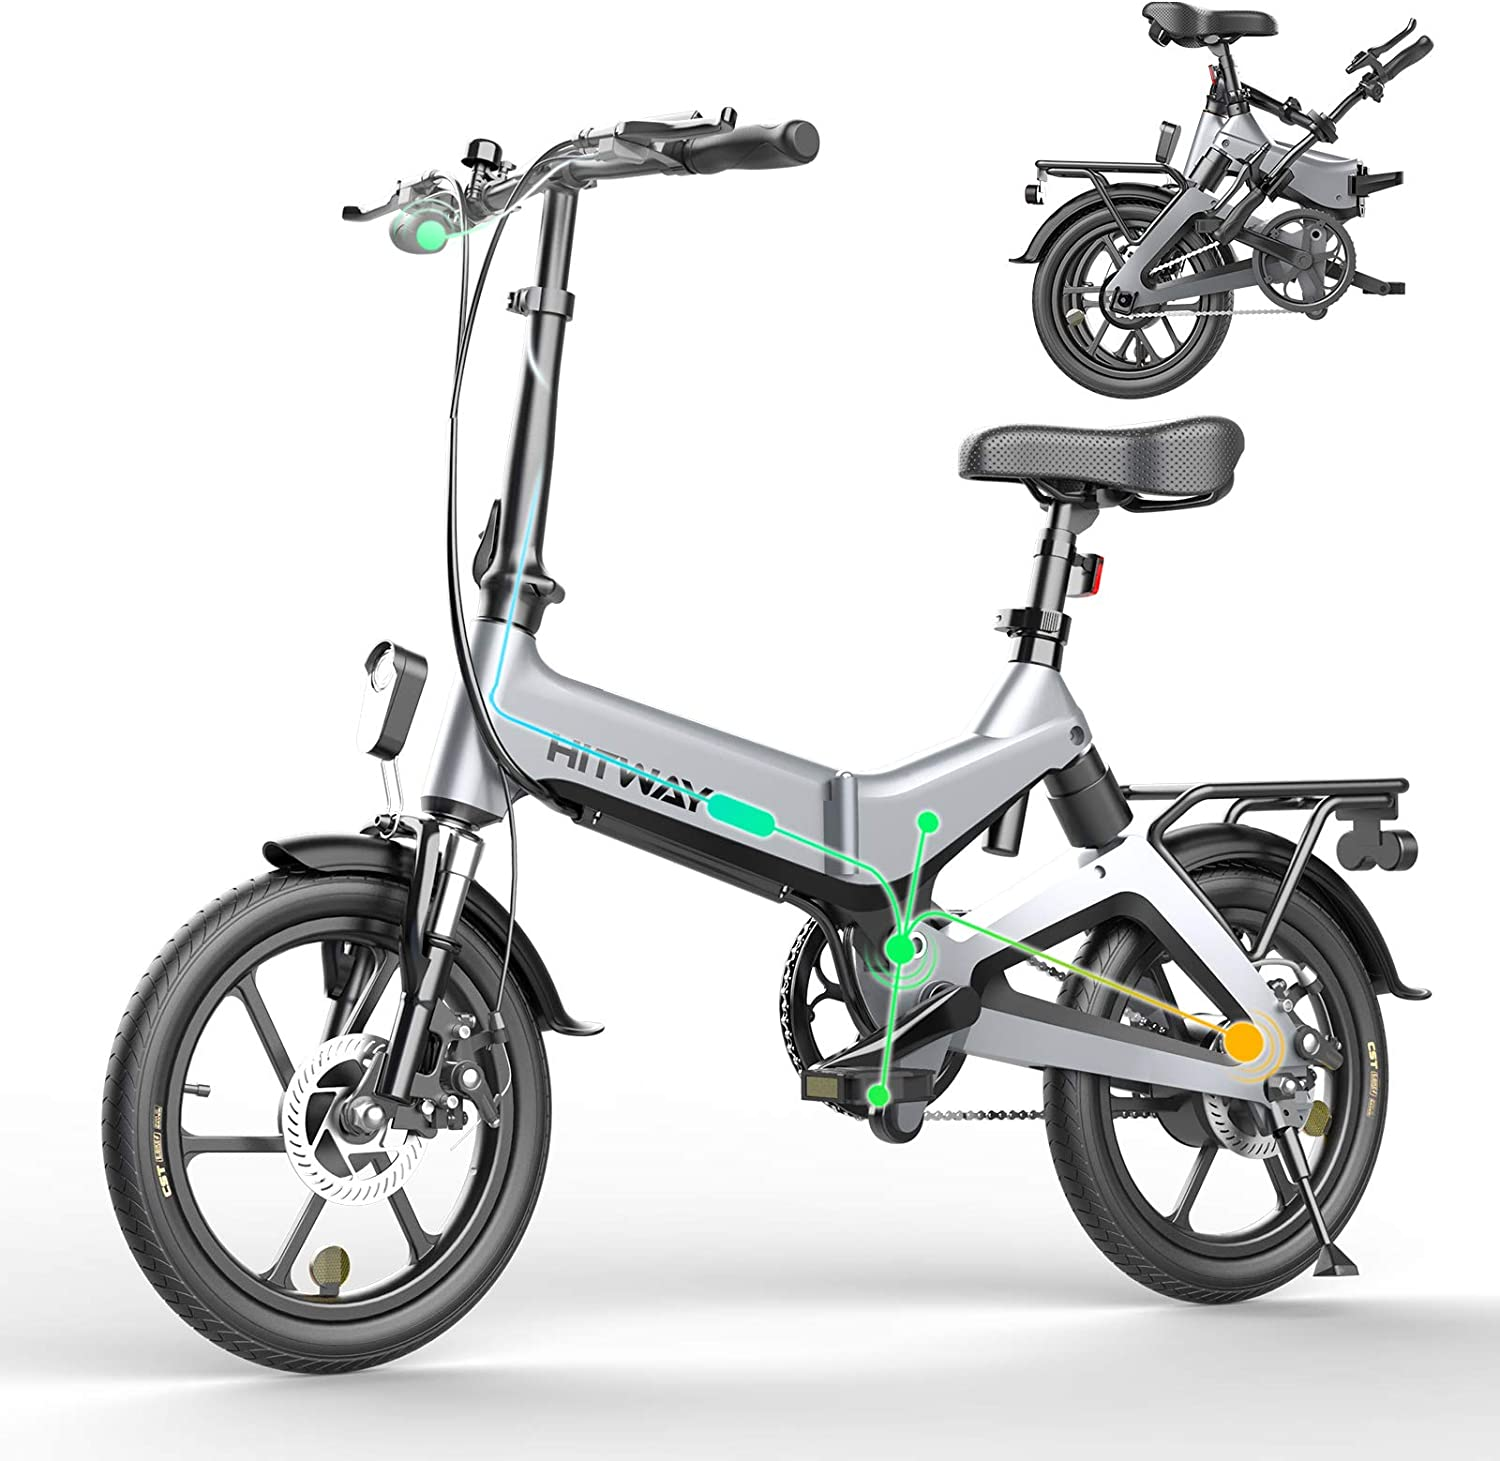 Hitway Electric Bicycle Folding Bike Ebike Electric Bicycles Folding Bike 250w Electric Bicycle E Bike With 7 5 Ah Battery 16 Inch For Teenagers And Adults Sport Freizeit